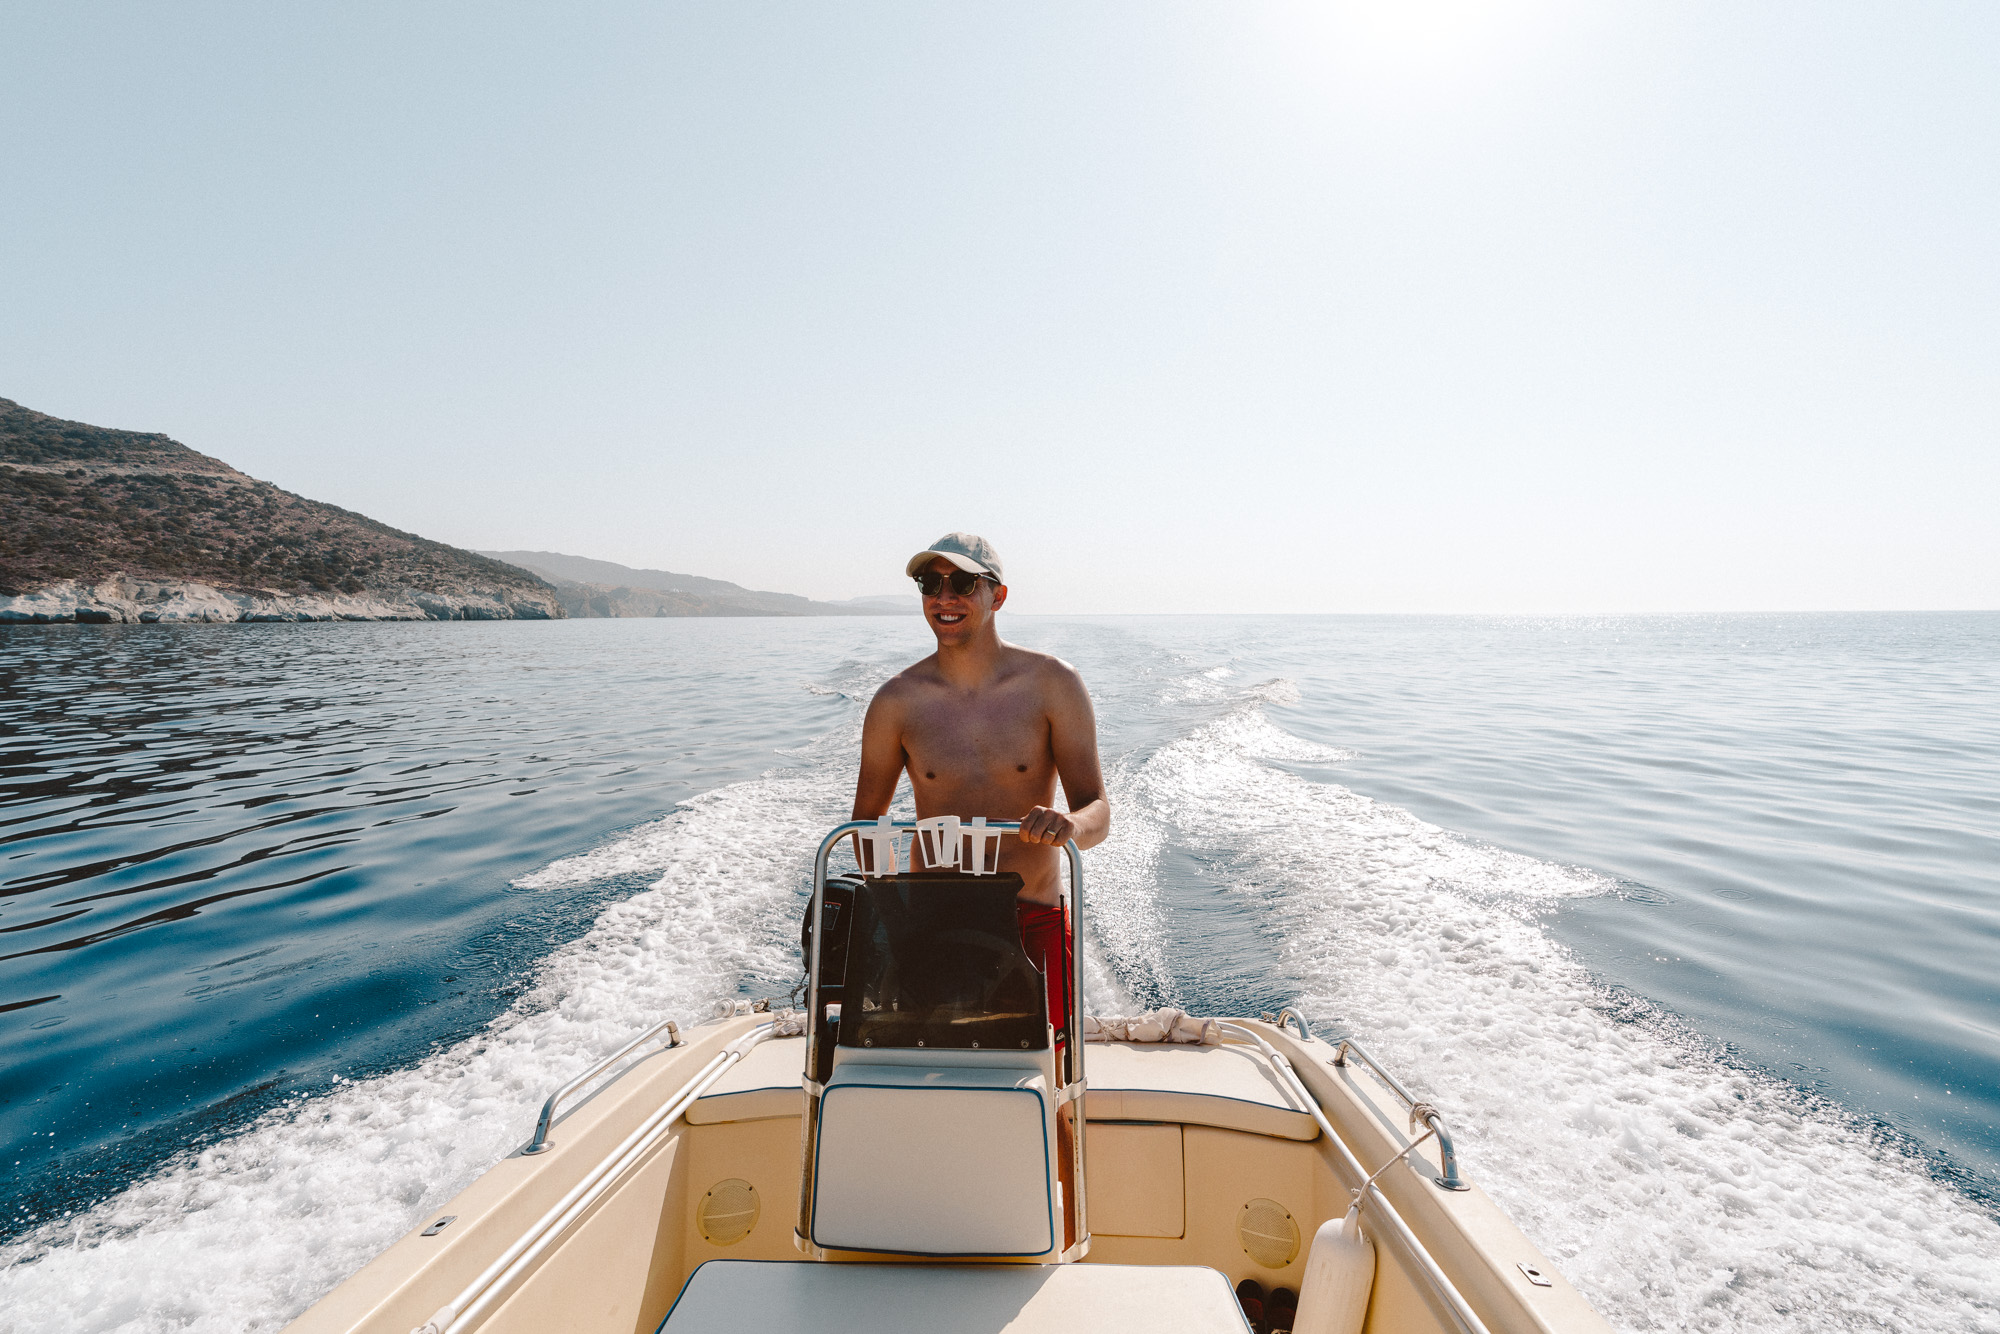 Boat day in Milos Greece via @finduslost